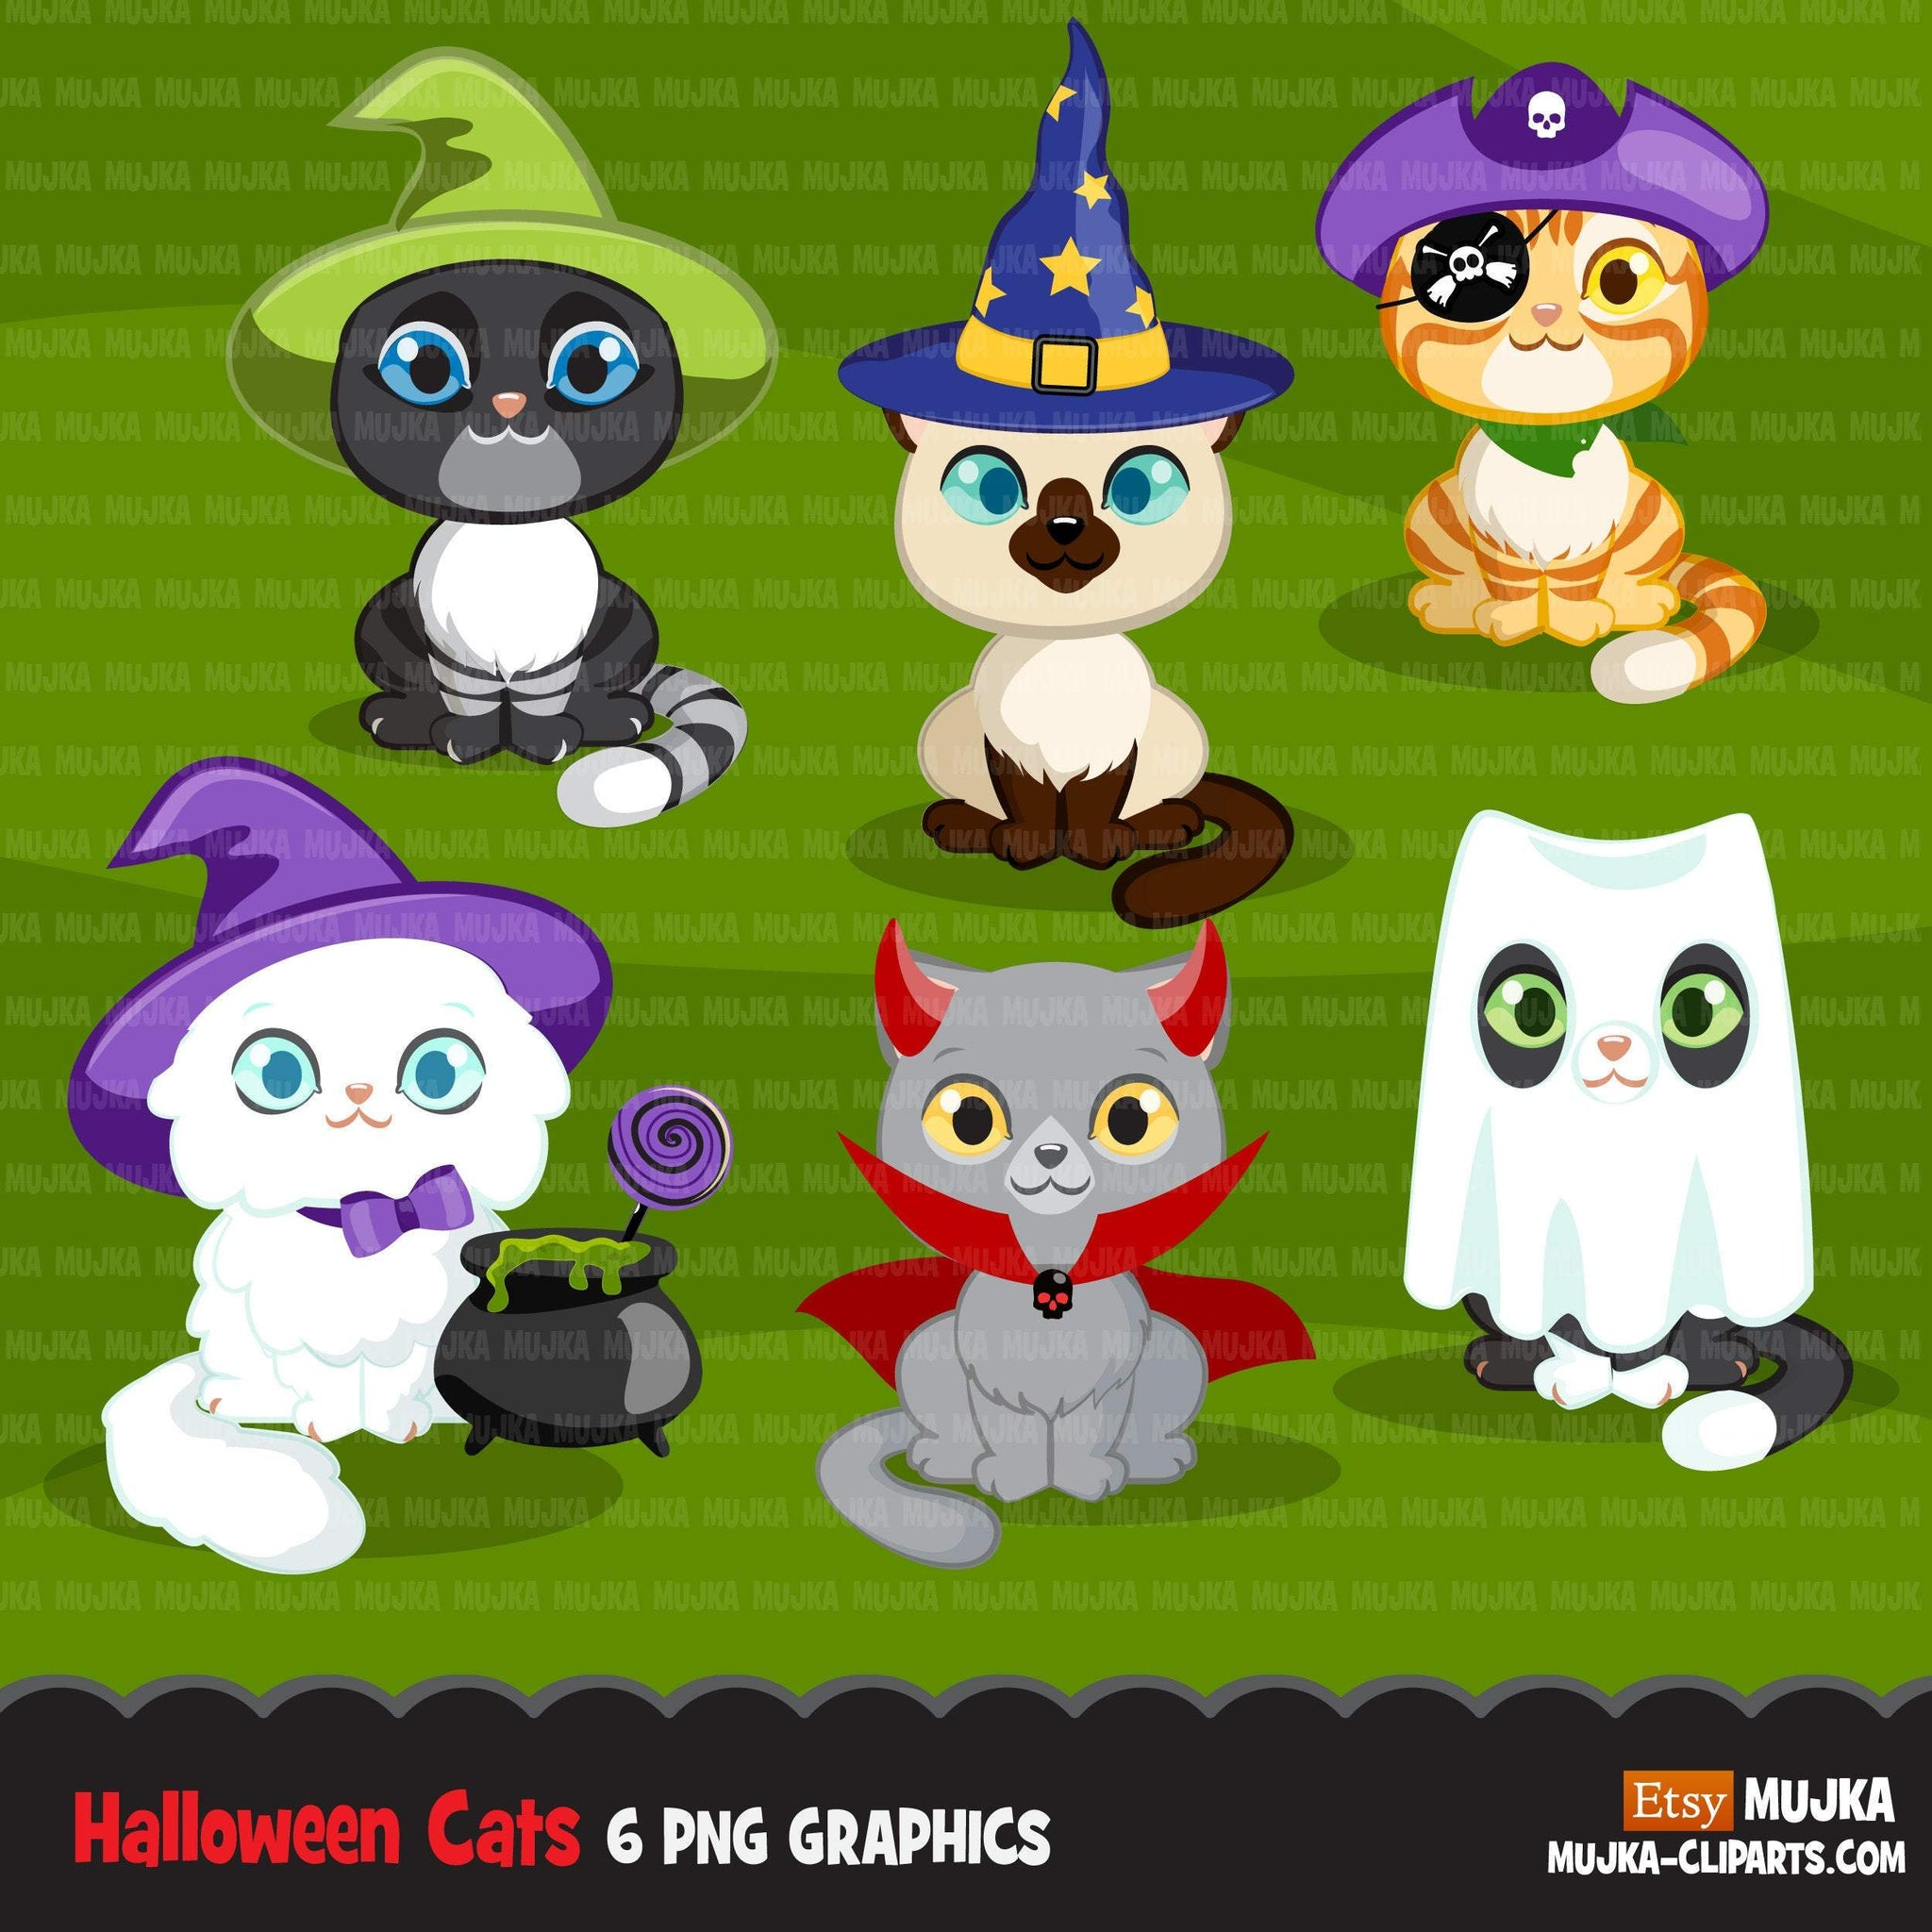 Halloween cats clipart, Black cat, Siamese, trick or treat graphics, commercial use Sublimation digital PNG clip art, animal clip art